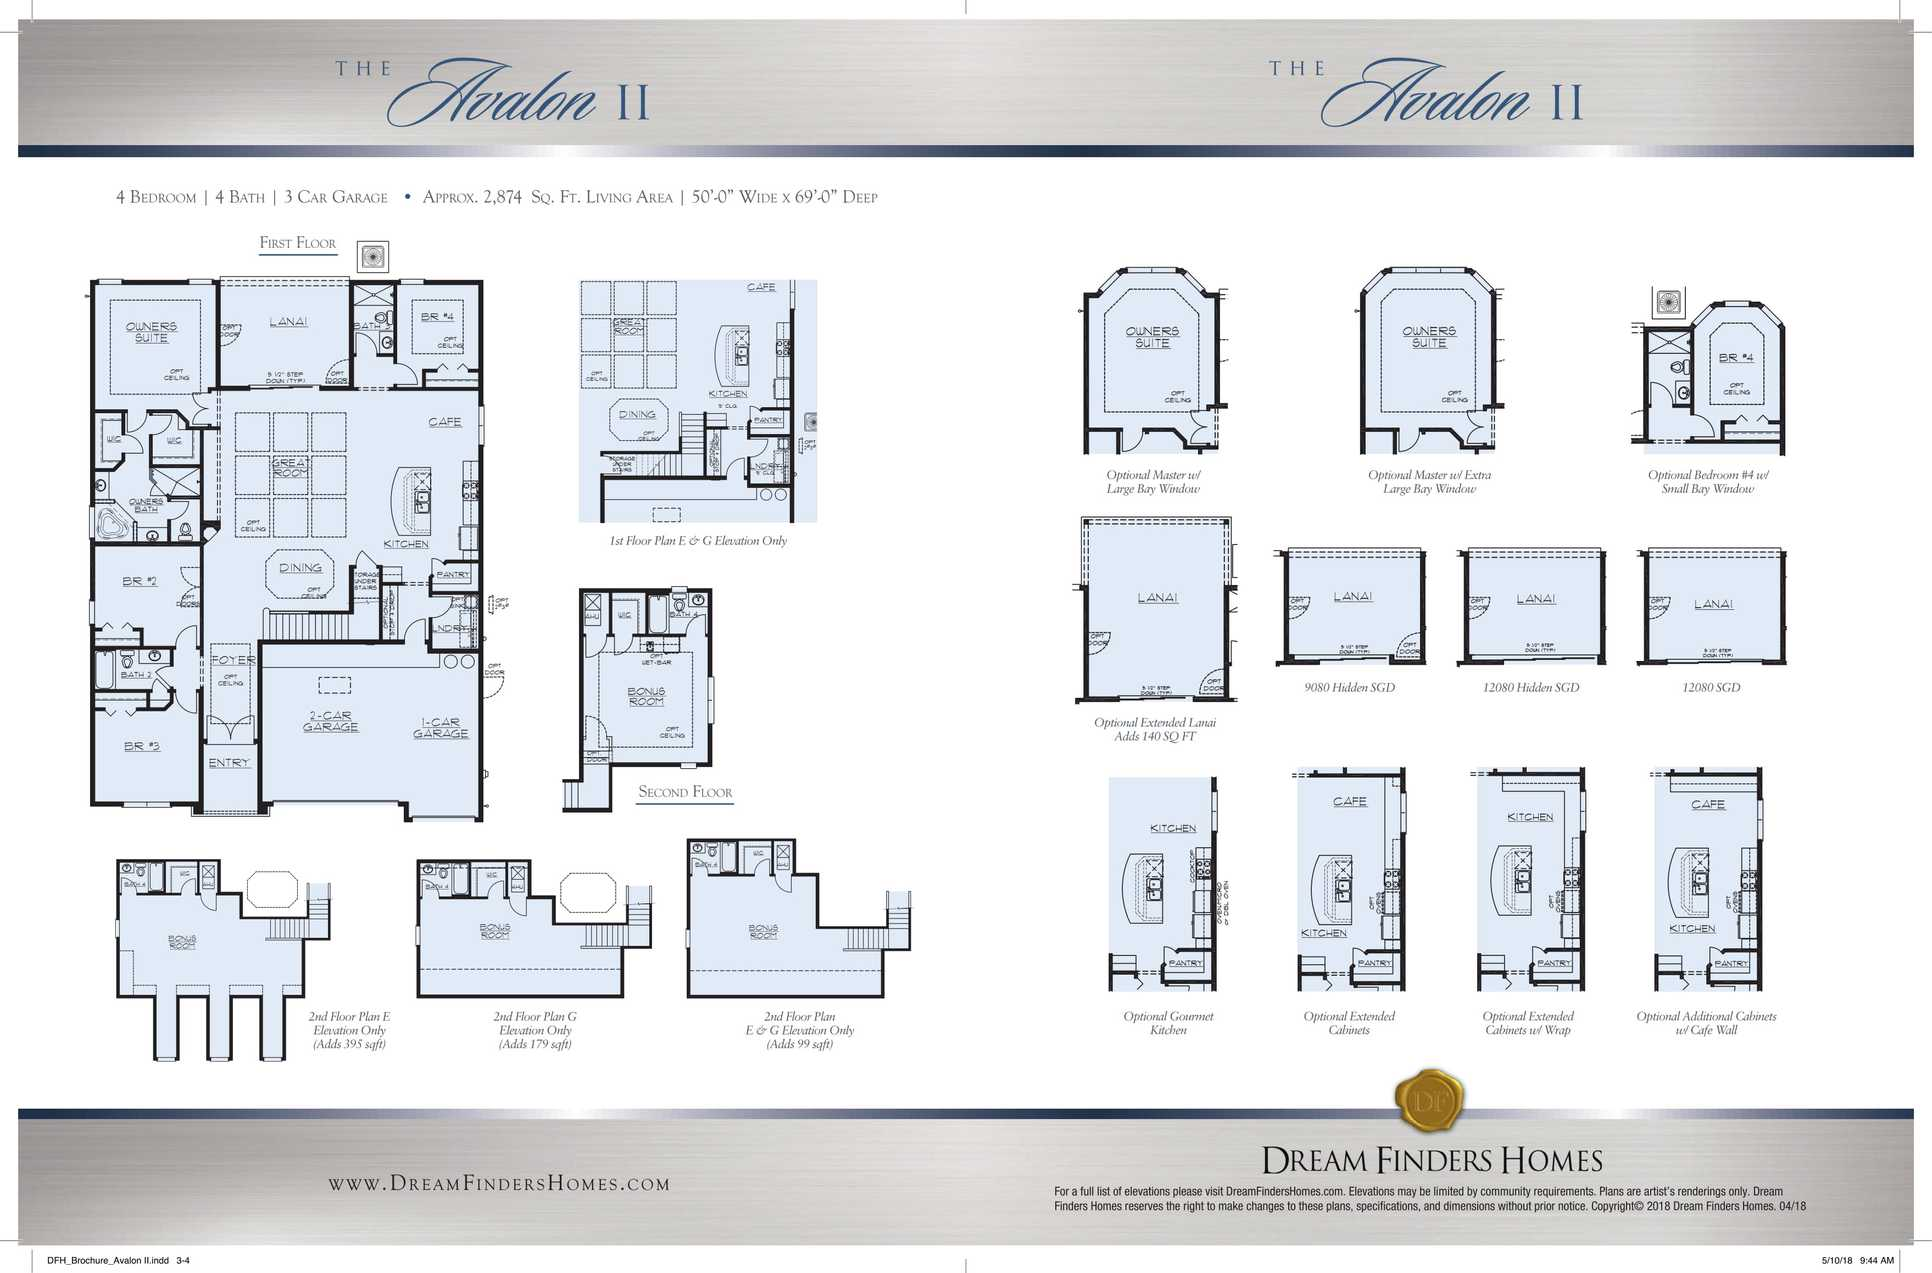 Avalon Ii Plan At Wilford Preserve In Orange Park Fl By Dream Finders Homes